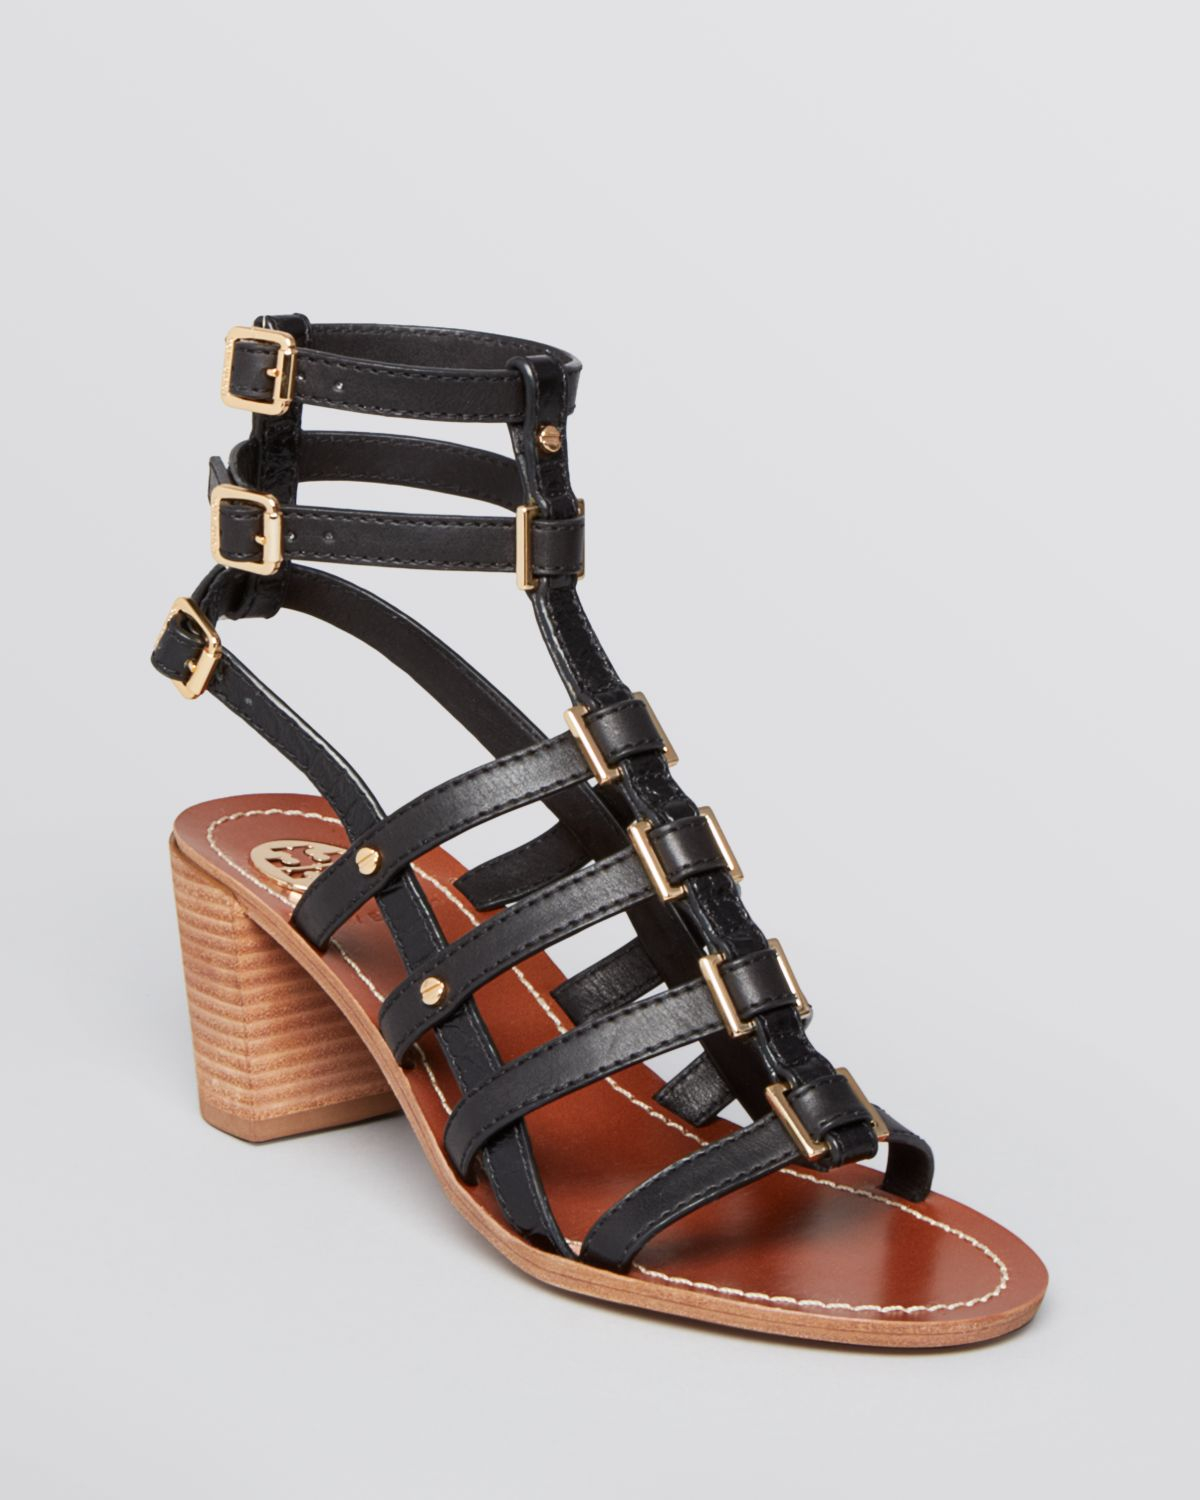 Tory Burch Gladiator Sandals Reggie Block Heel In Black Lyst